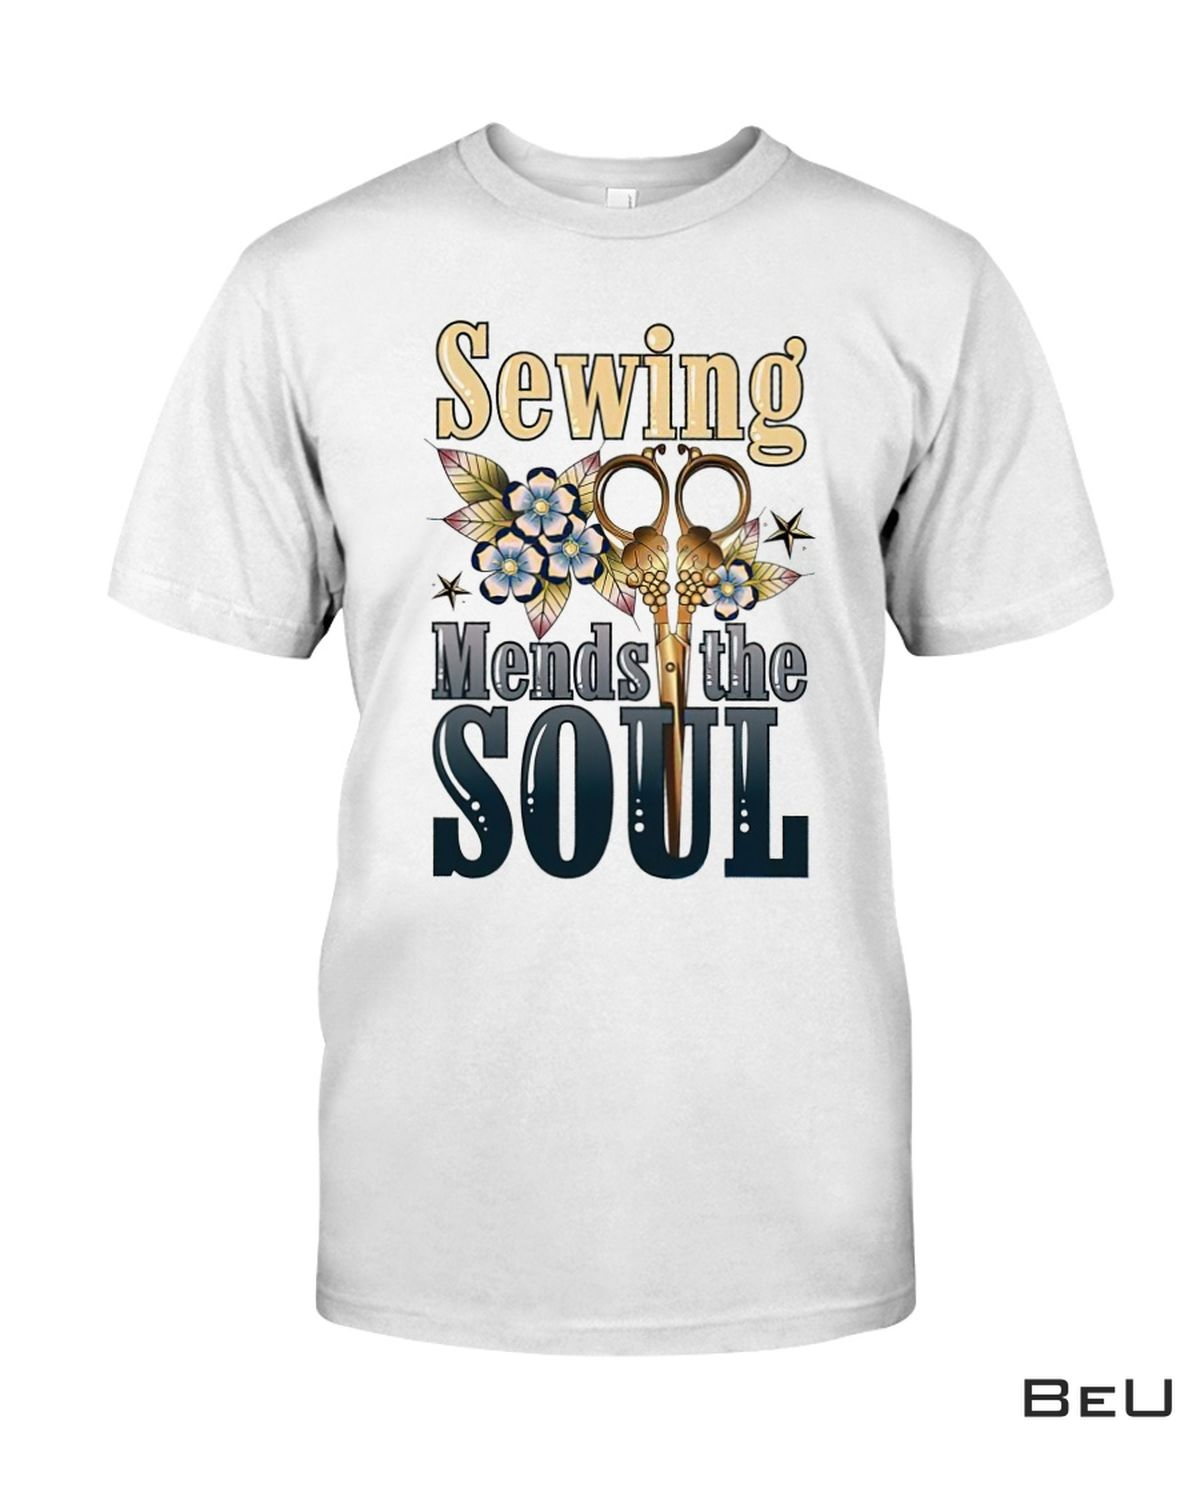 Sewing Mends The Soul Shirt, Hoodie, Tank Top